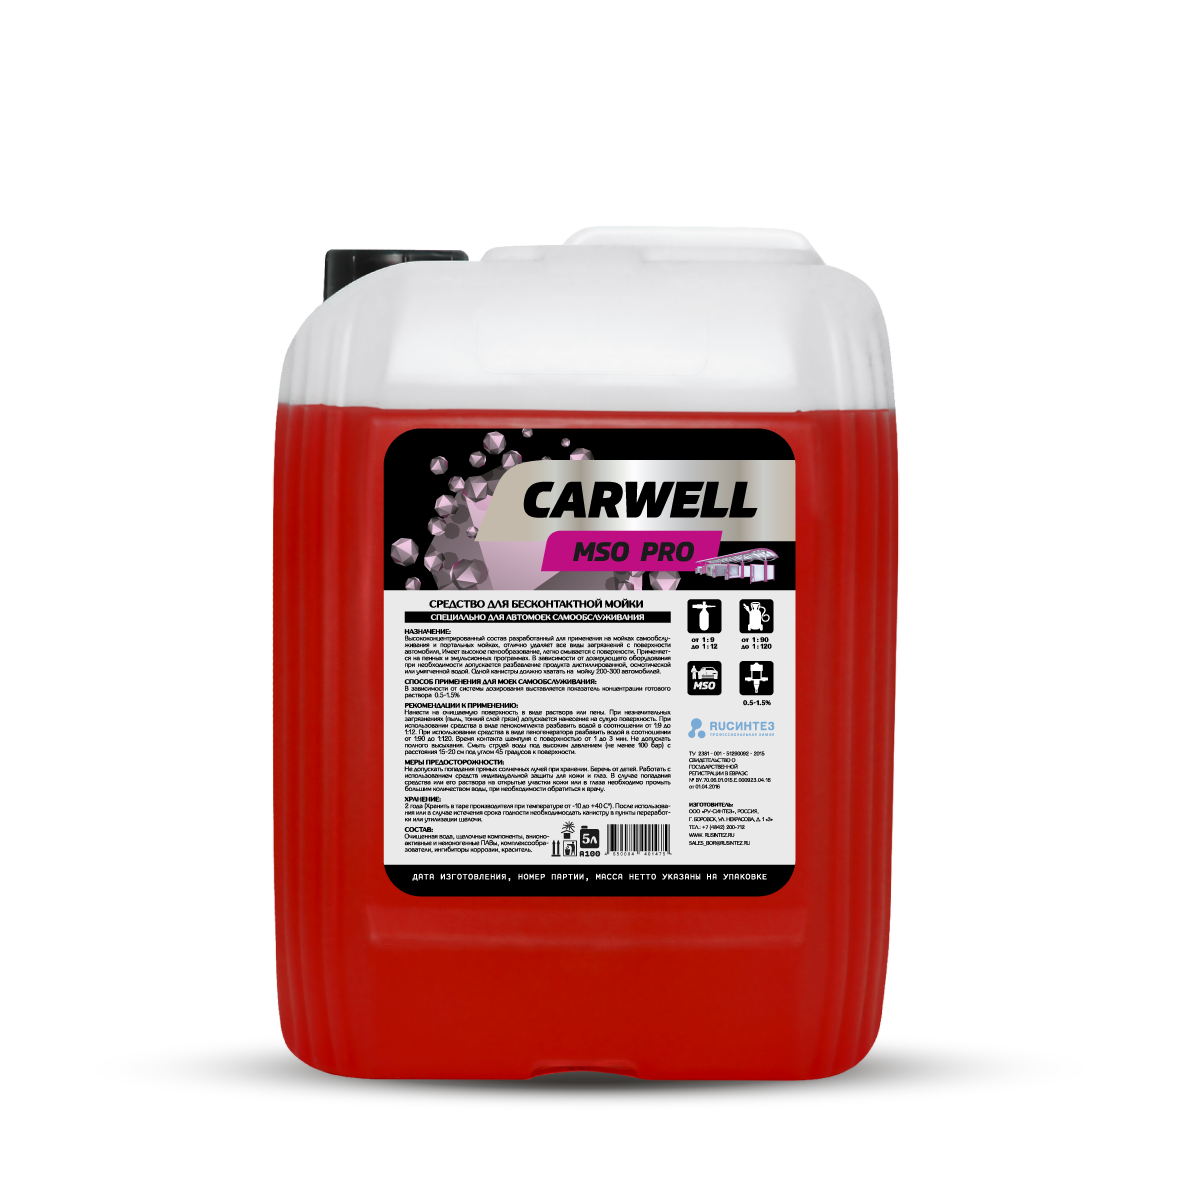 Carwell MSO PRO